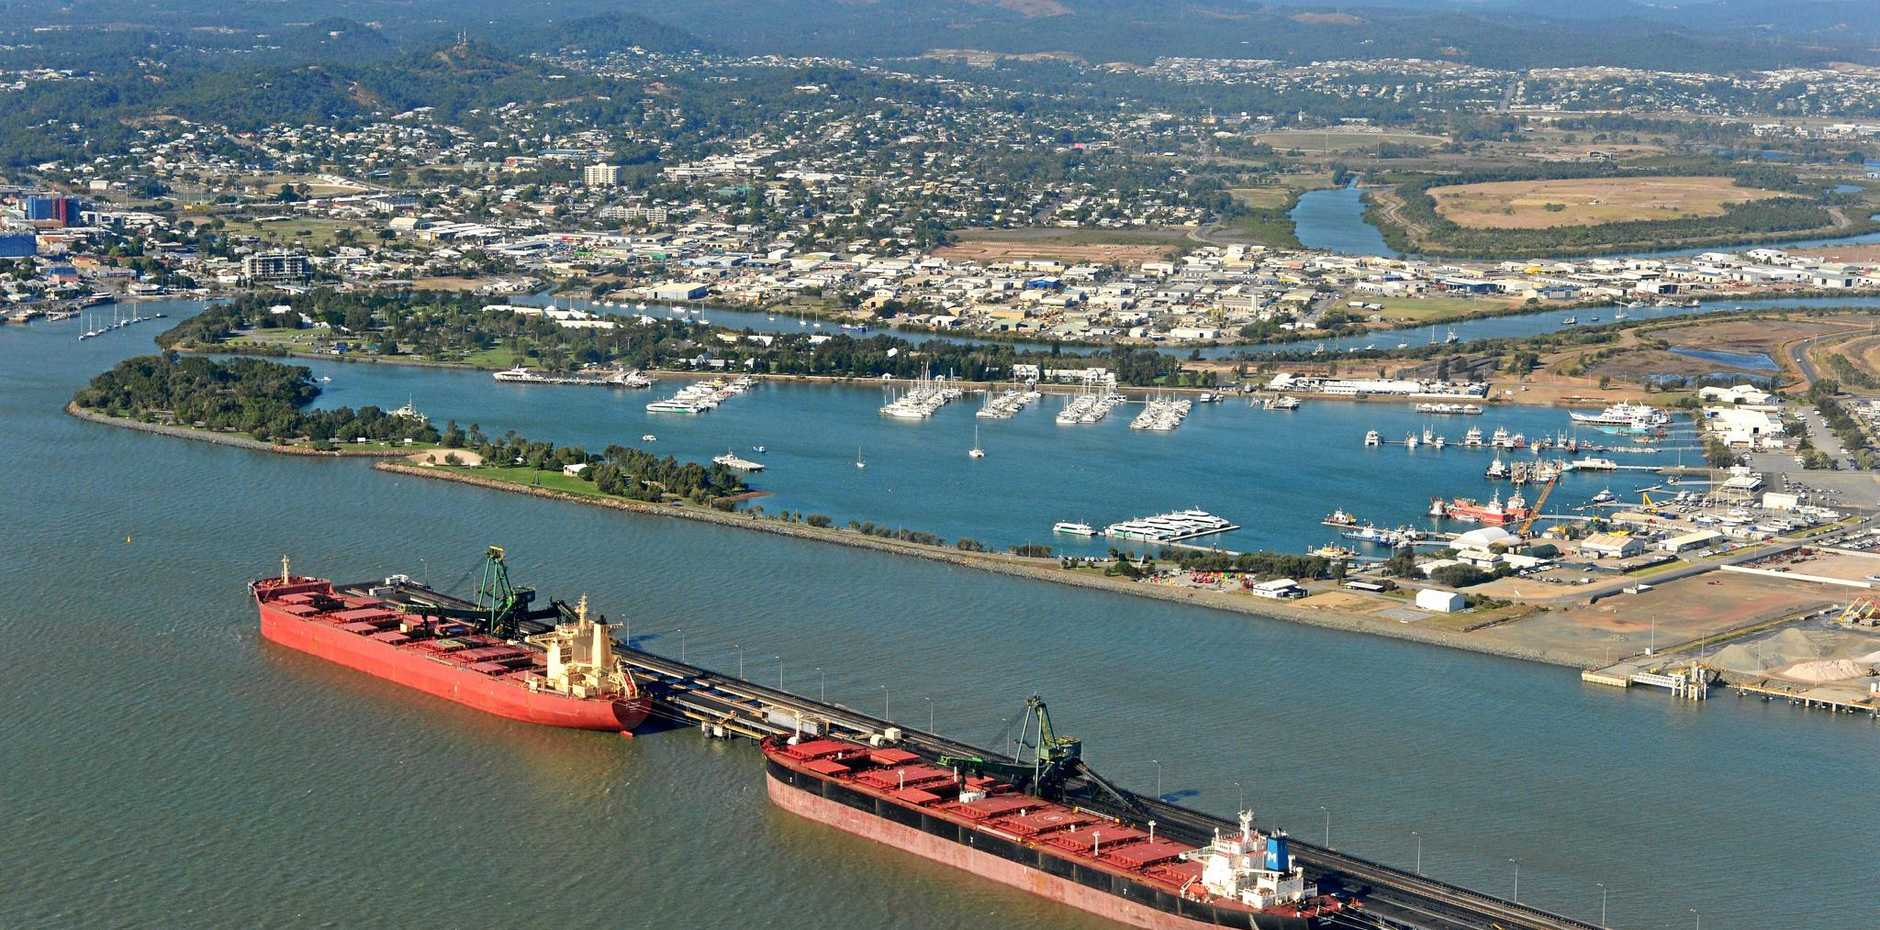 Aerial view of the Gladstone Harbour.Photo Brenda Strong / The Observer